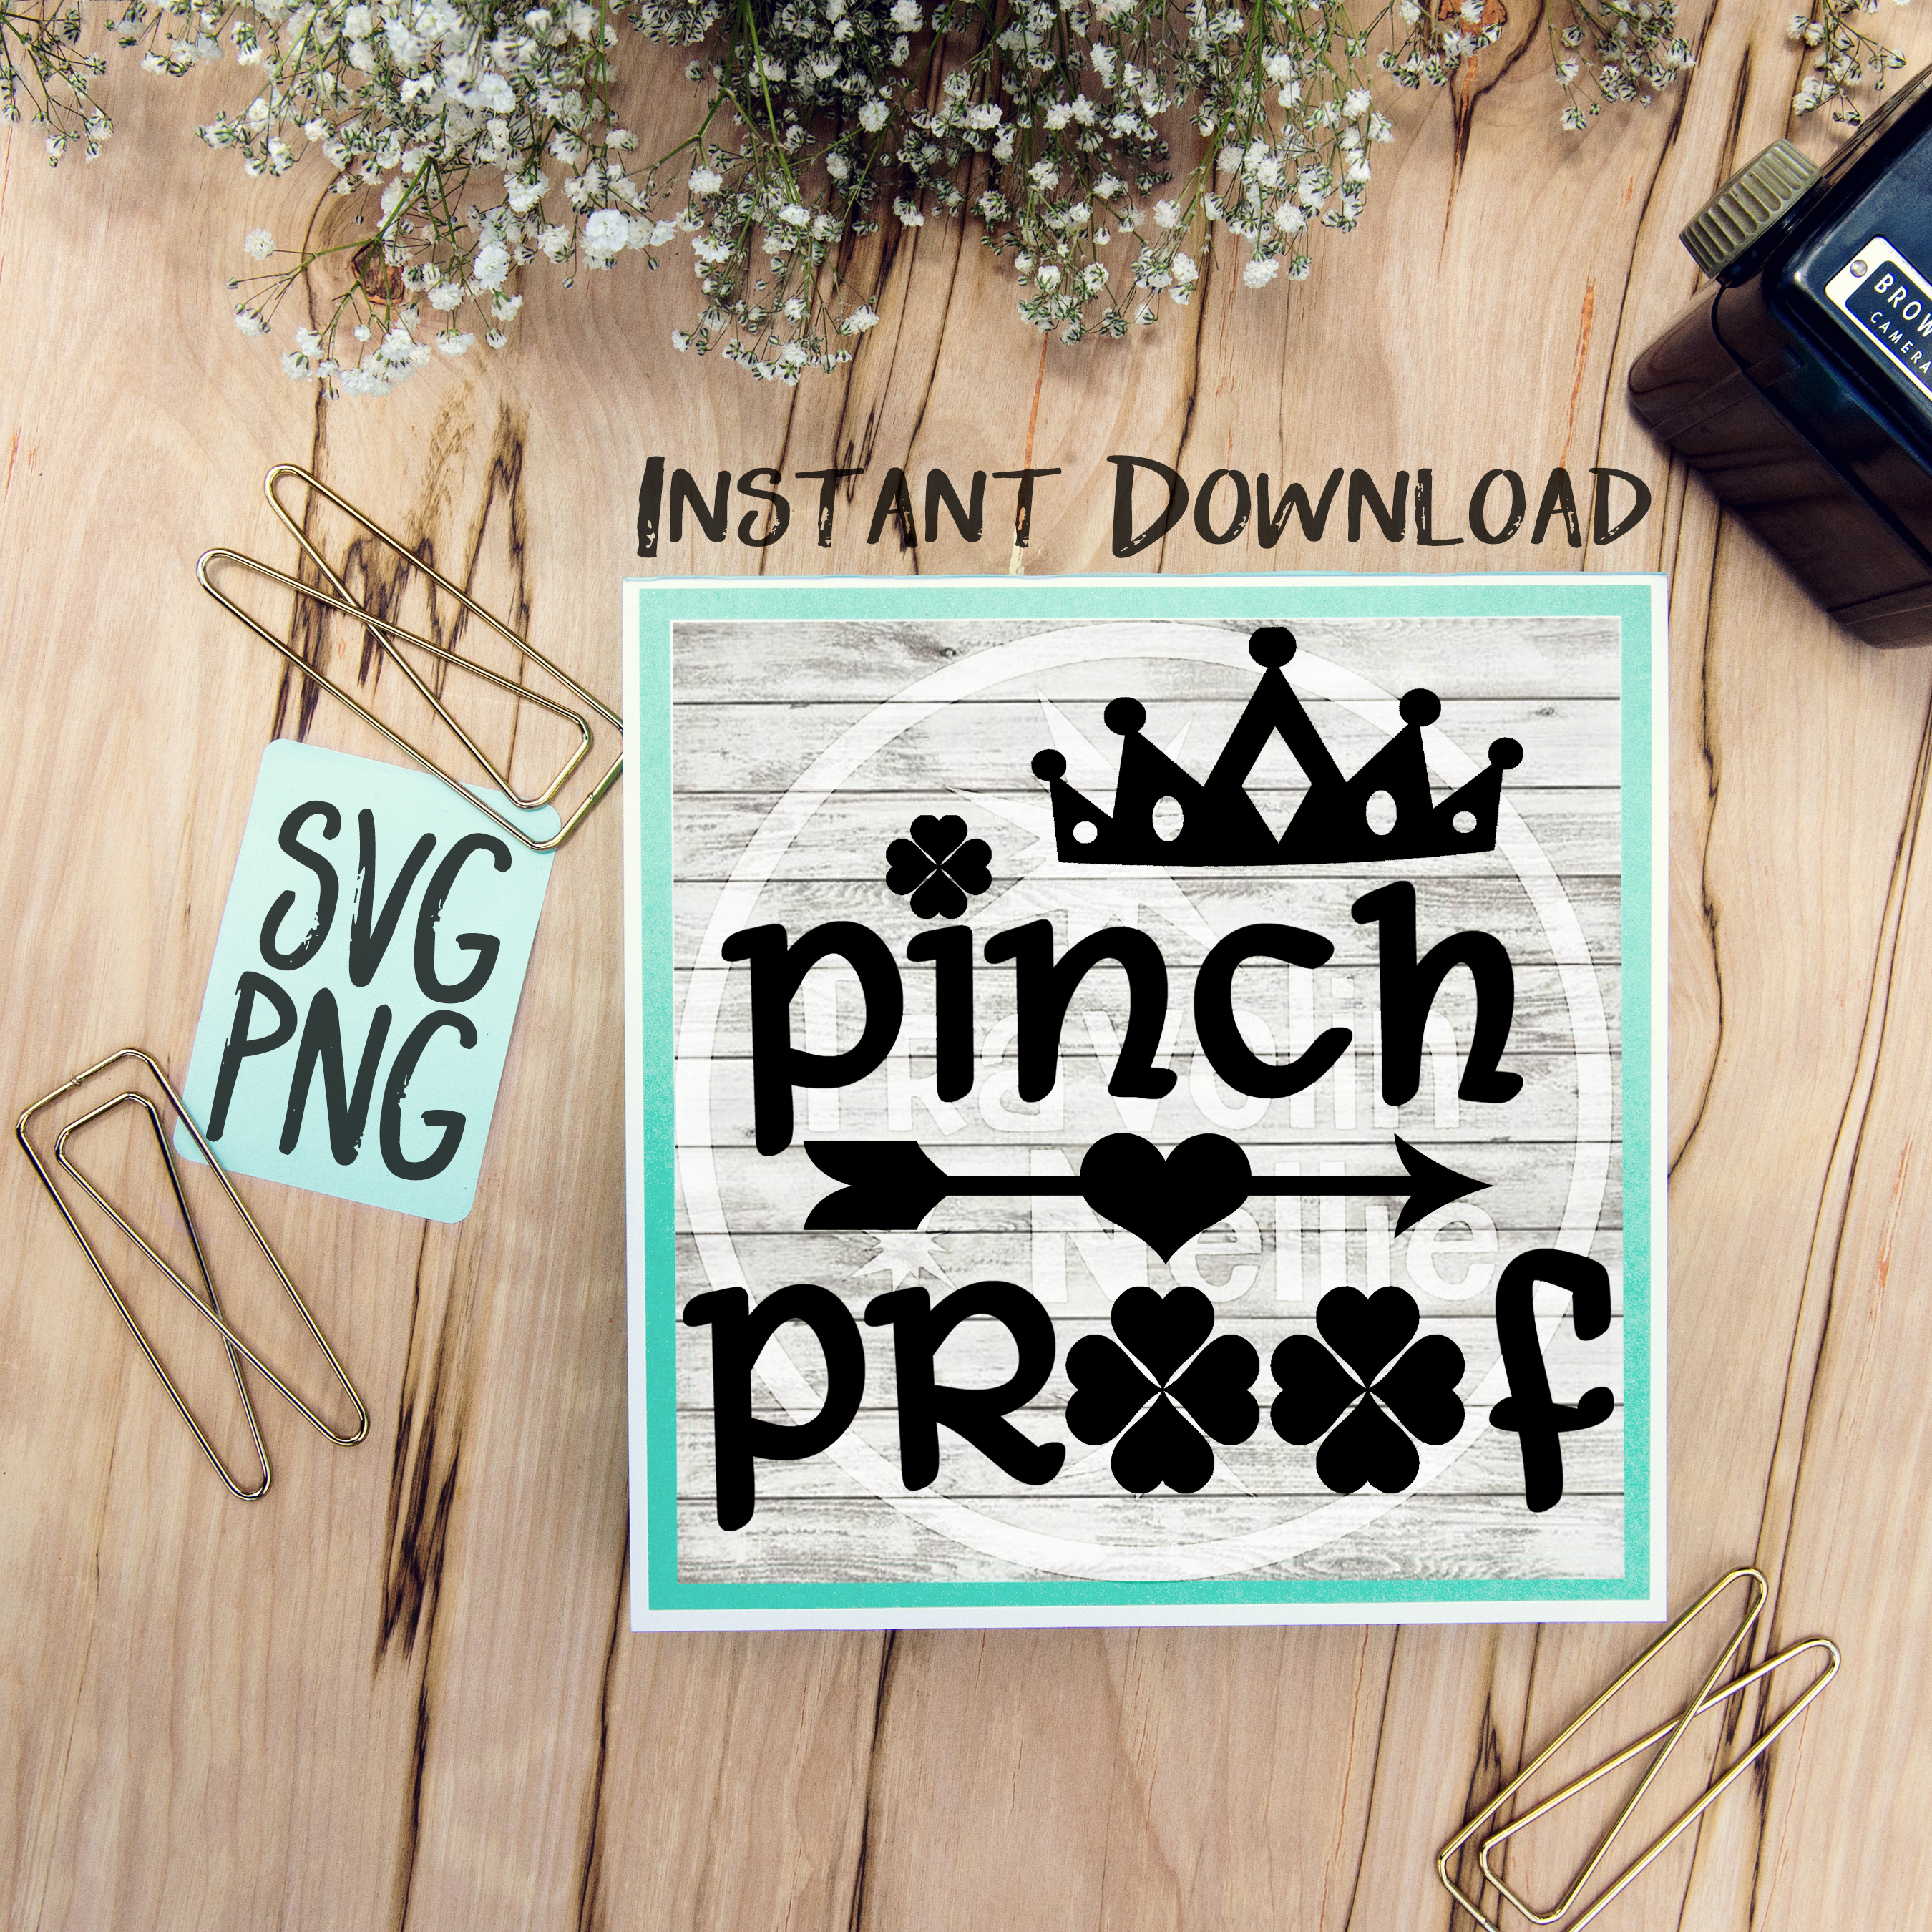 Pinch Proof SVG PNG Image Design for Cut Machines Print DIY Design Brother Cricut Cameo Cutout St. Patrick's Day Irish Clover Lucky example image 1